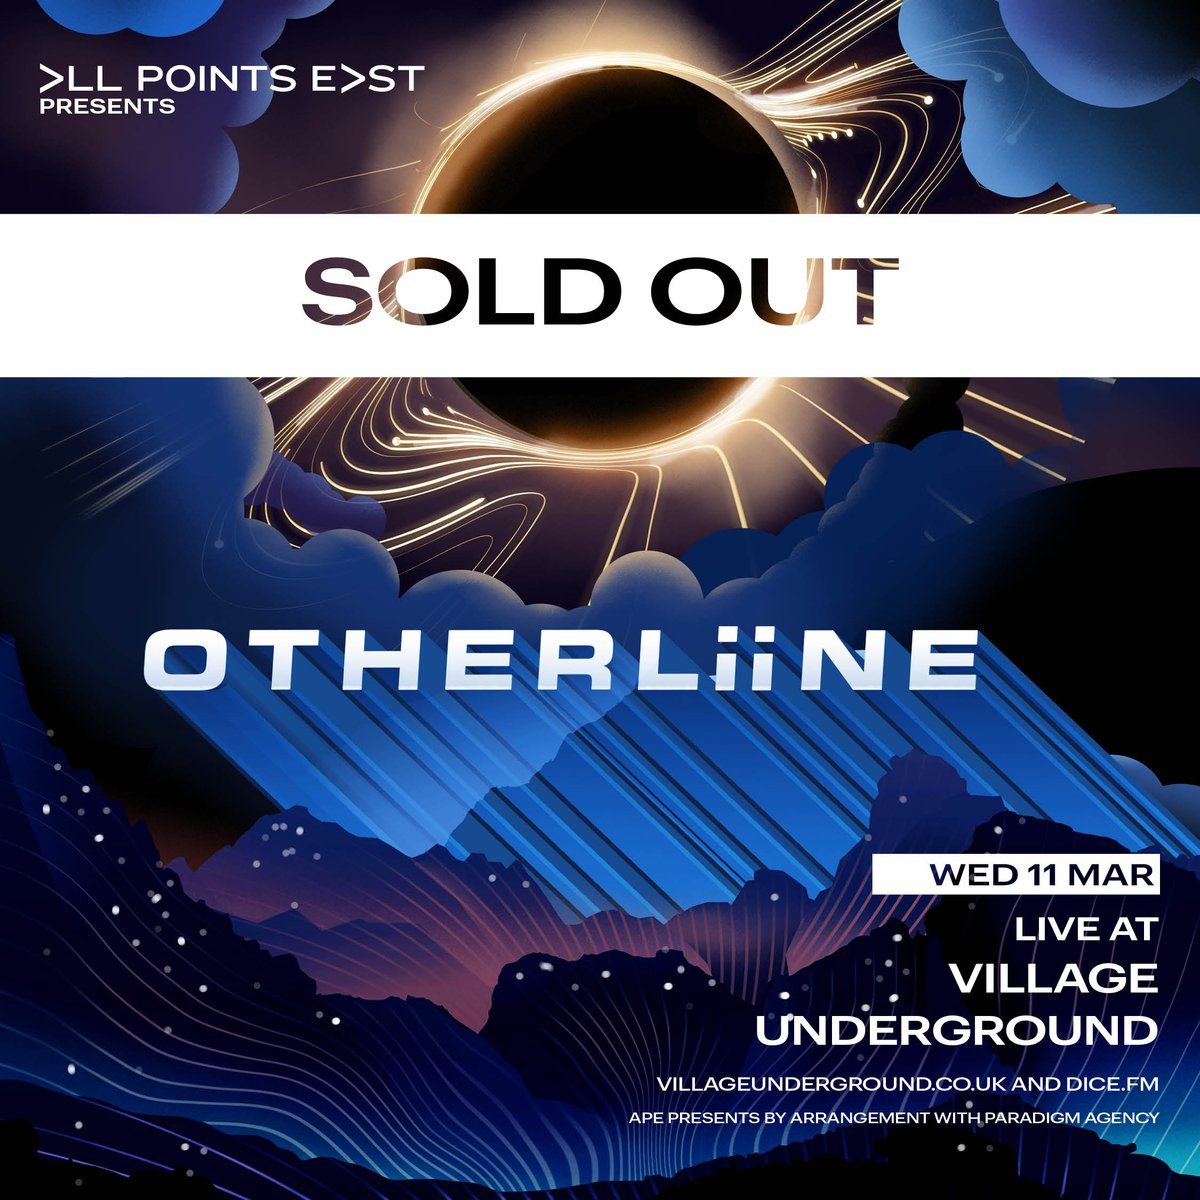 Sold out. @otherliine